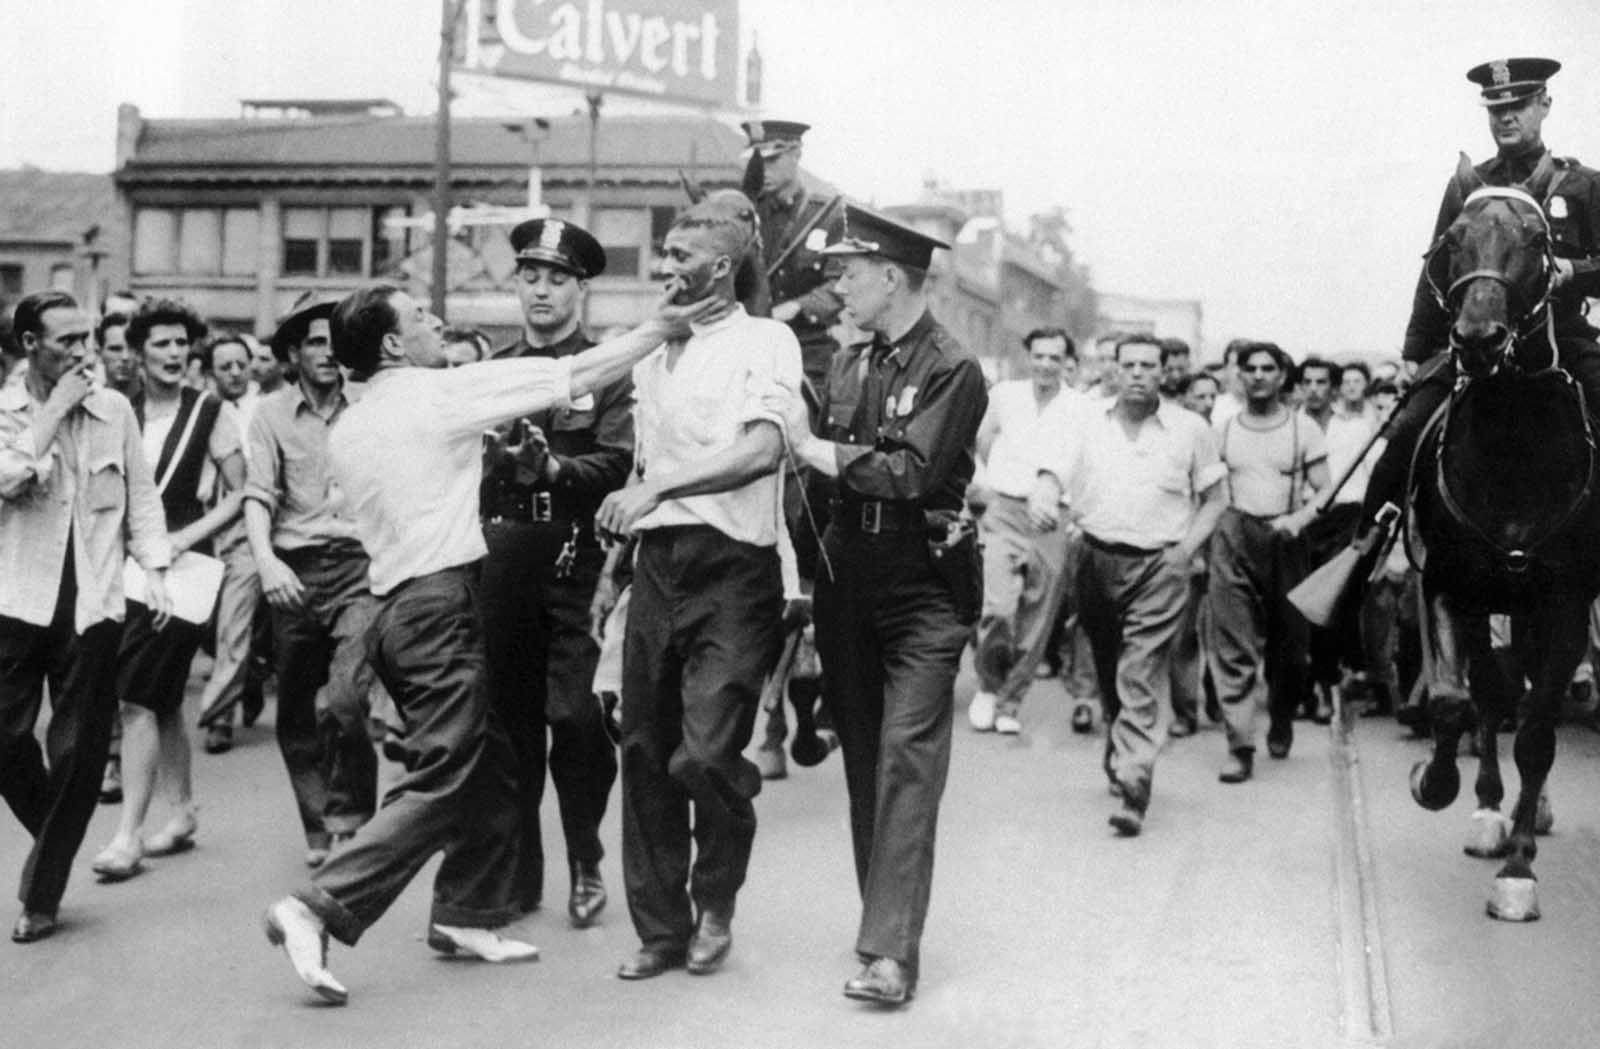 Police attempt to break up an incident as race rioting flared in the downtown area of Detroit on June 21, 1943. Troops were called in at the request of Michigan Governor Harry F. Kelly when police were unable to stop the fighting.